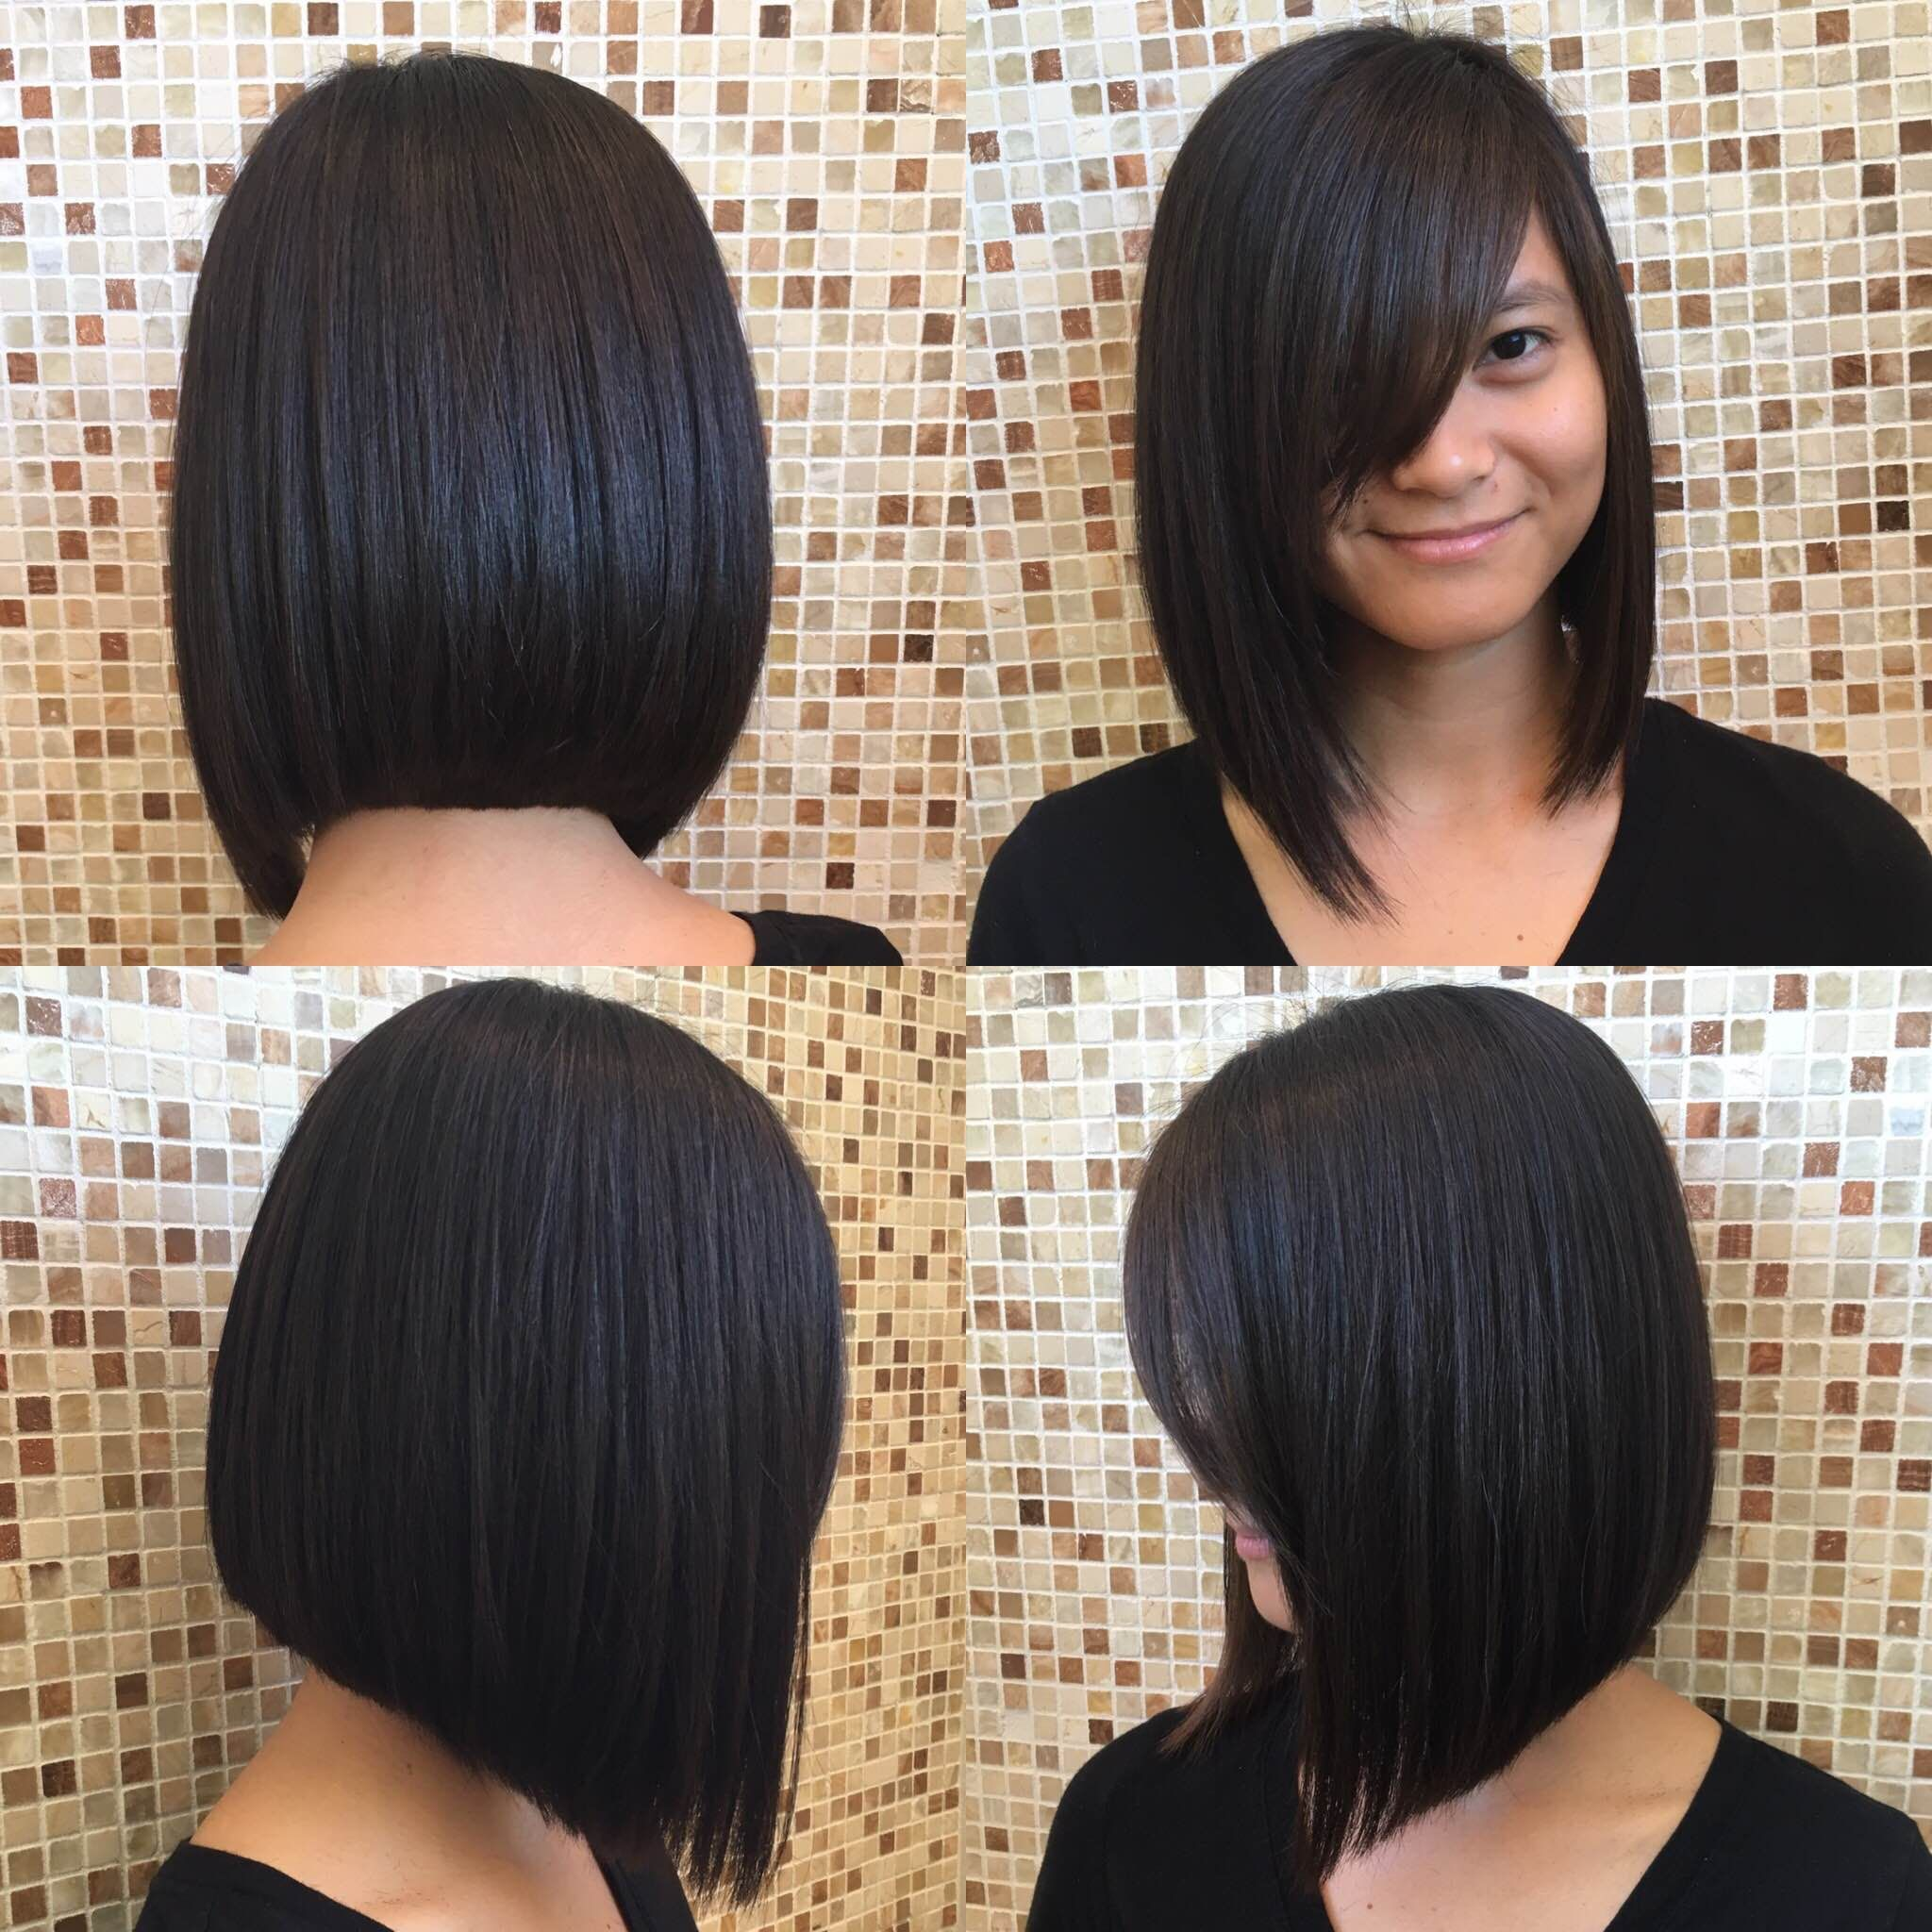 Haircut By Amanda At Safar Miami Safar Miami Pinterest Haircuts